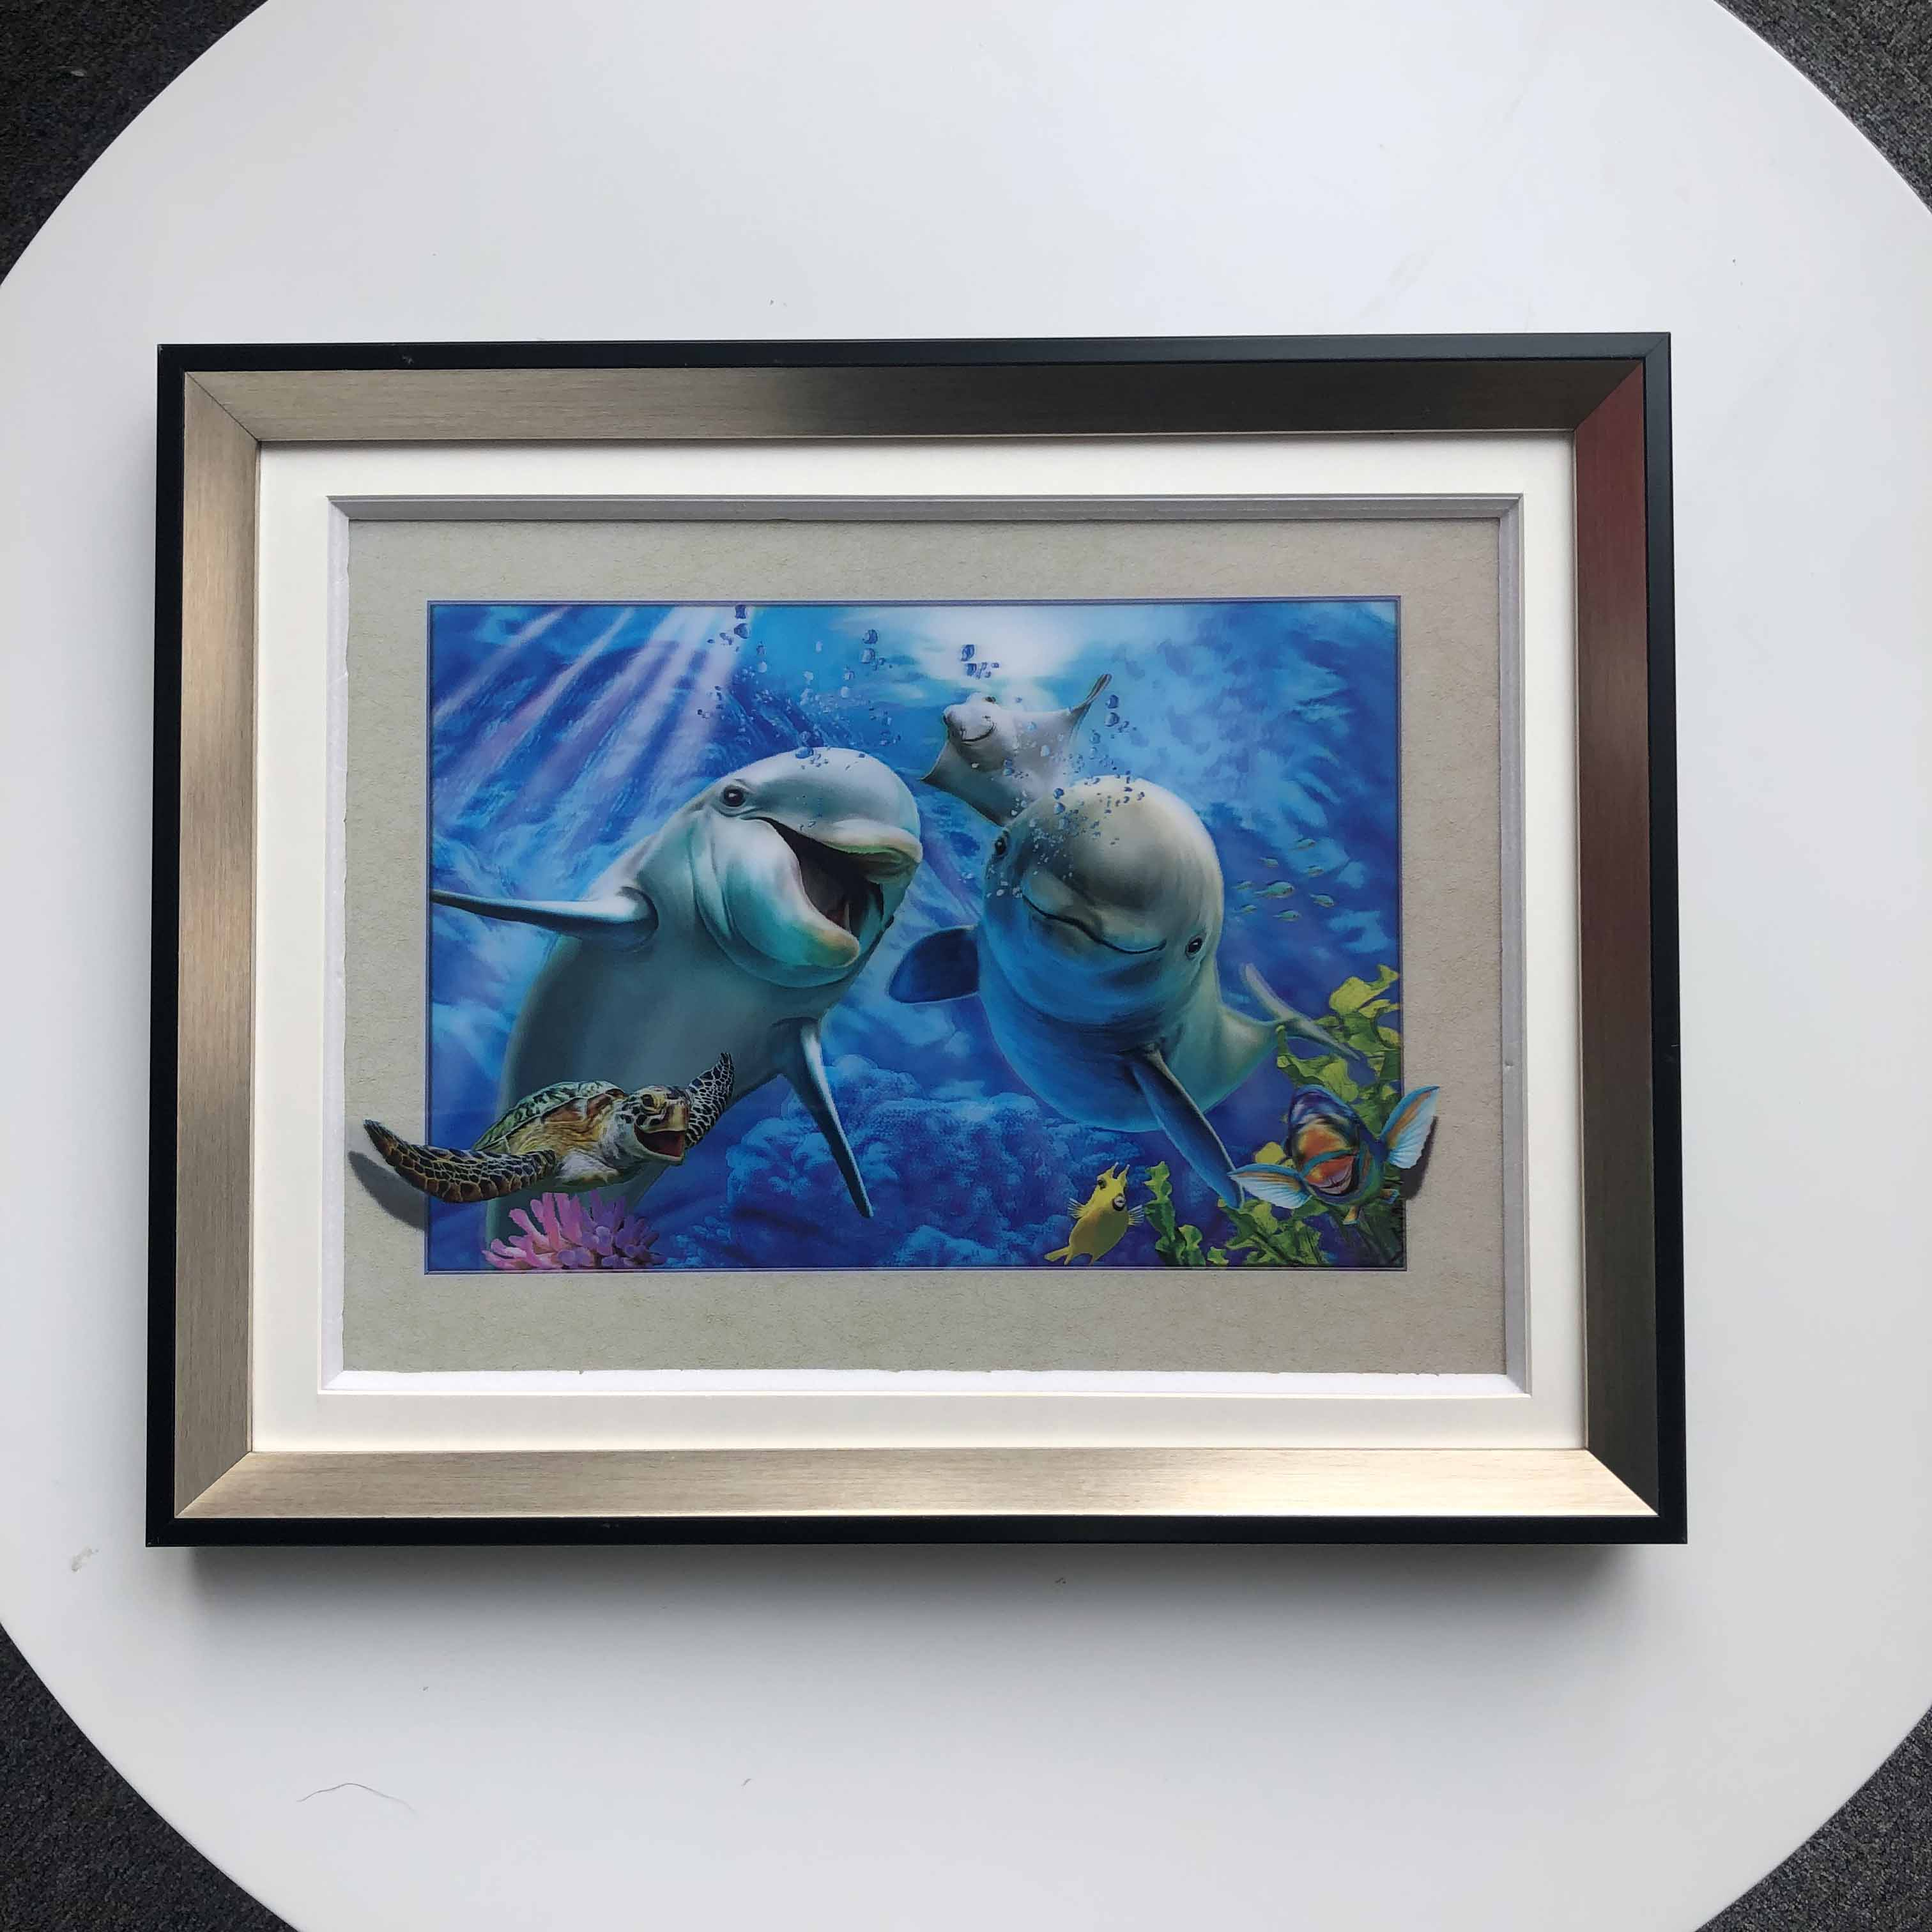 Sea turtle dolphin 5D lenticular animal printing pictures for decoration